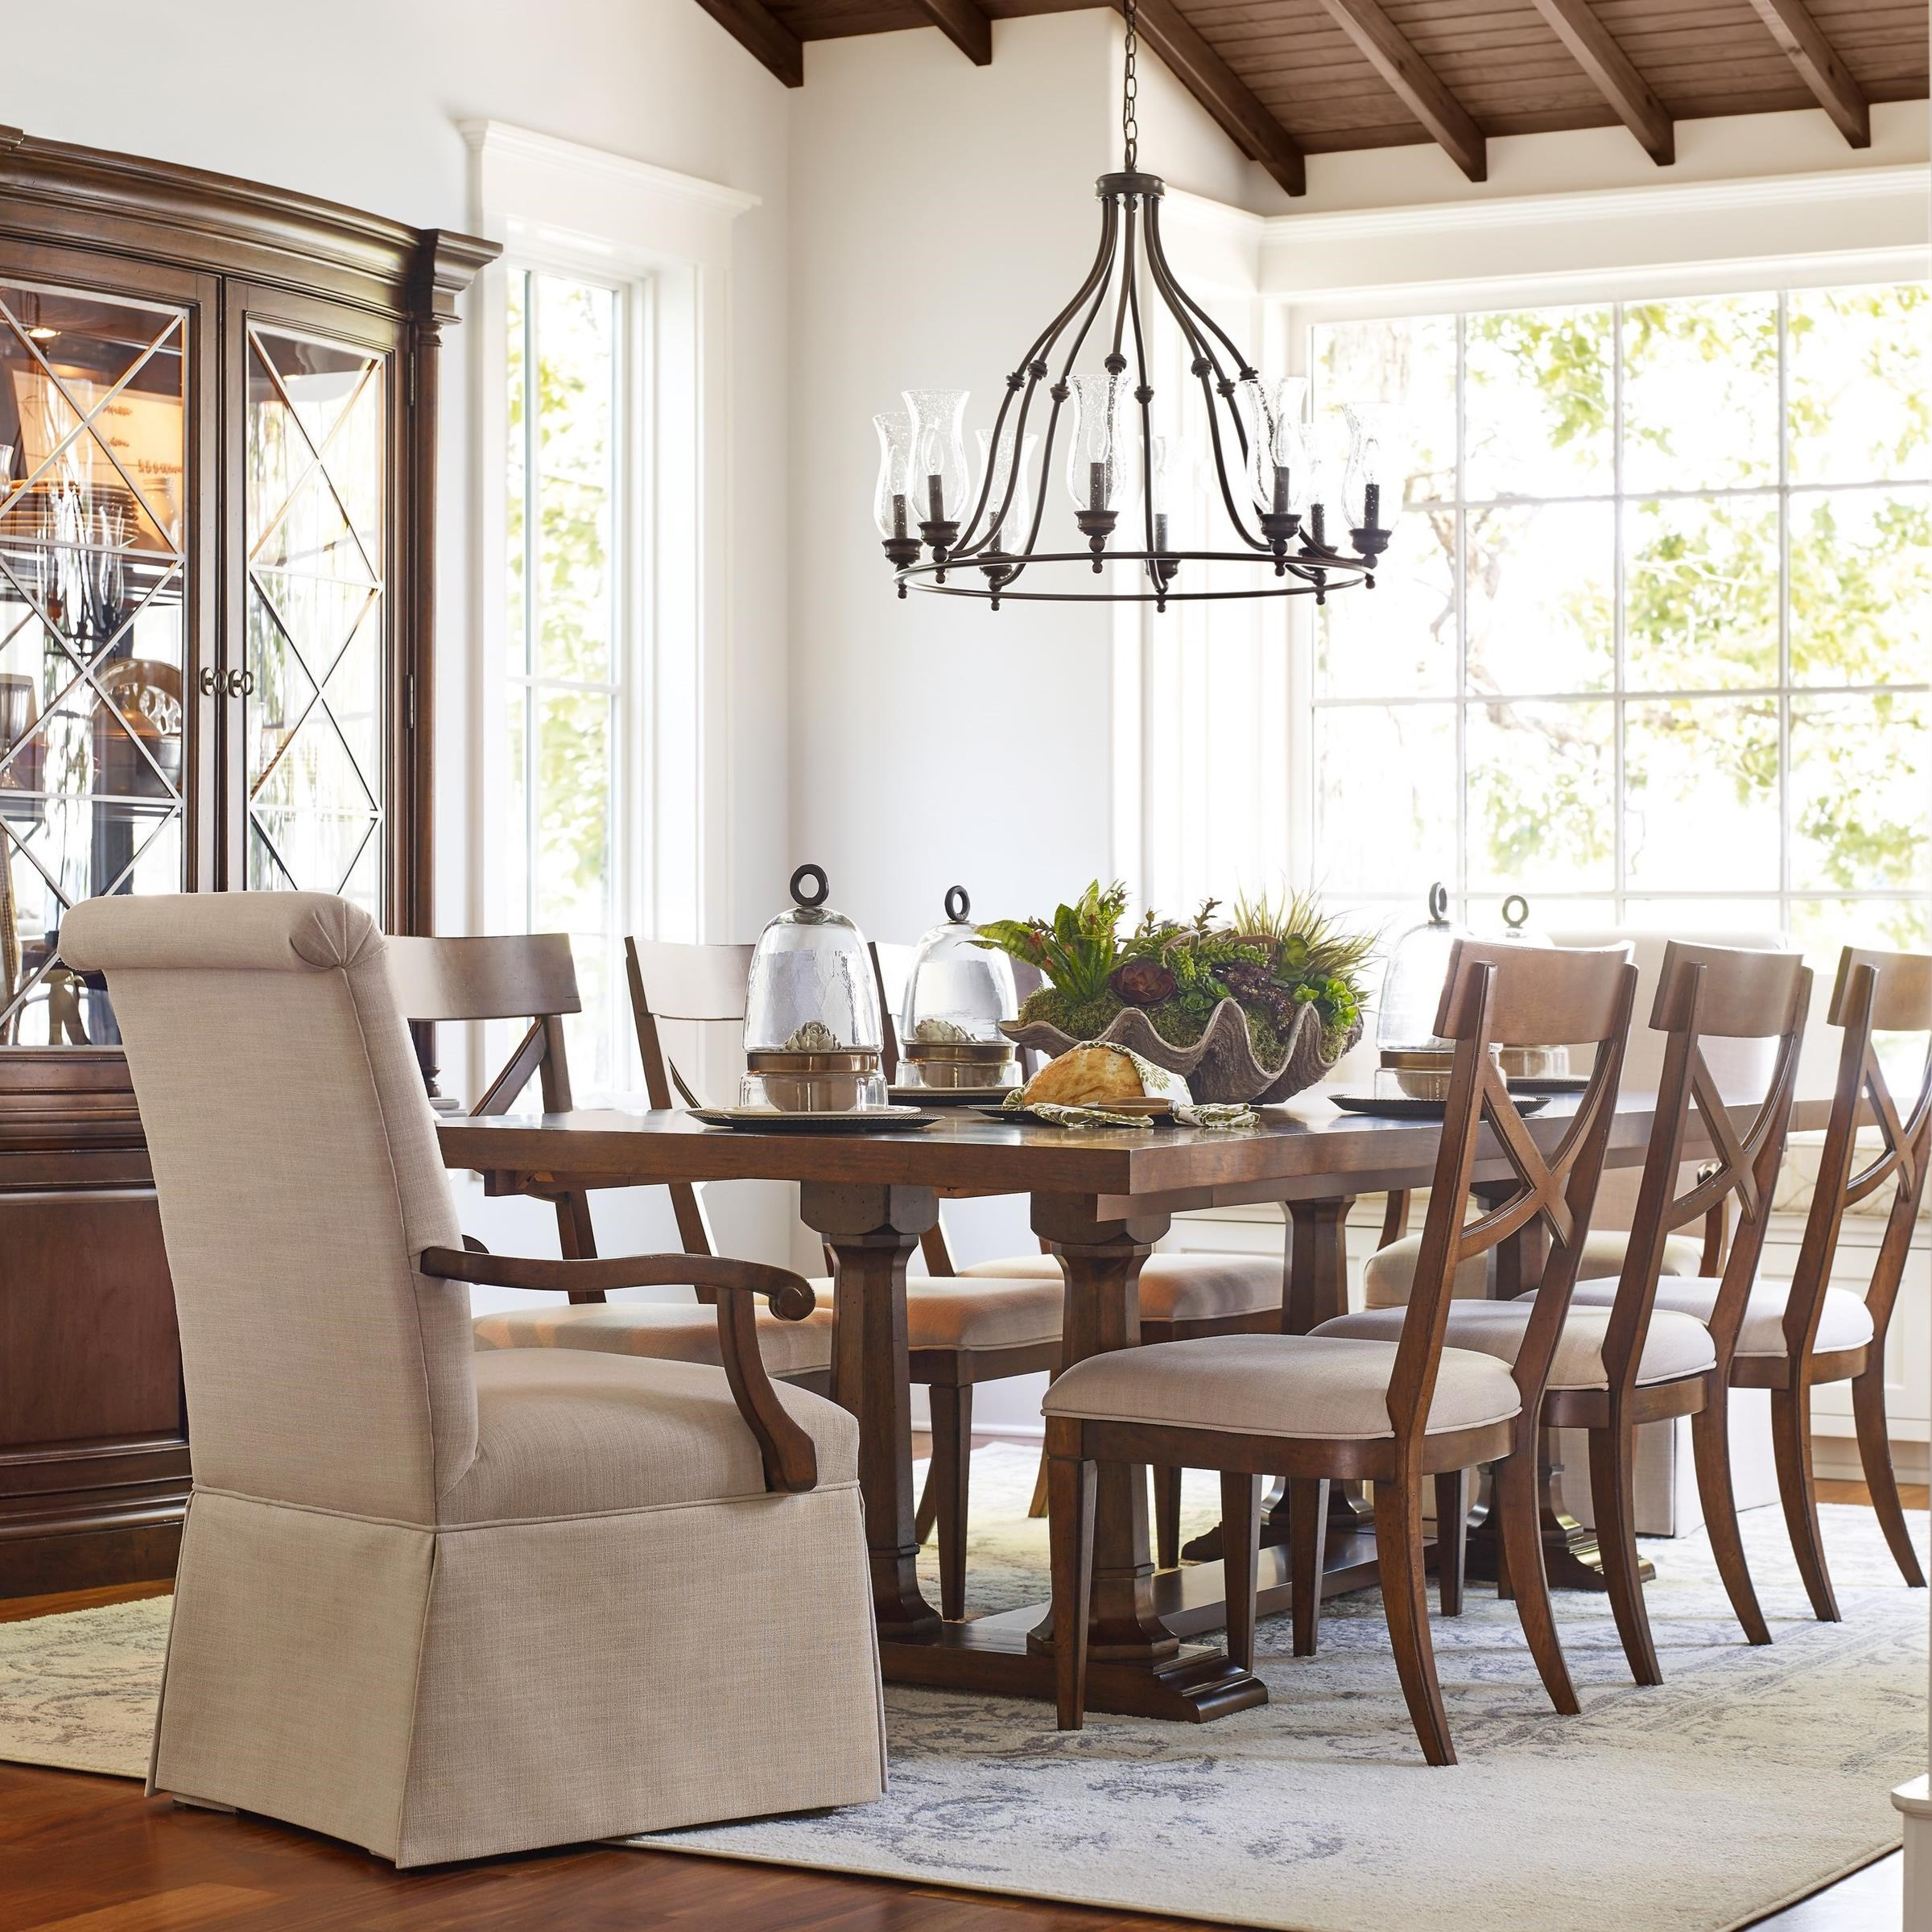 Rachael Ray Home by Legacy Classic Upstate 9 Piece Trestle Table & Chair Set - Item Number: 6040-622K+2x451 KD+6x240 KD